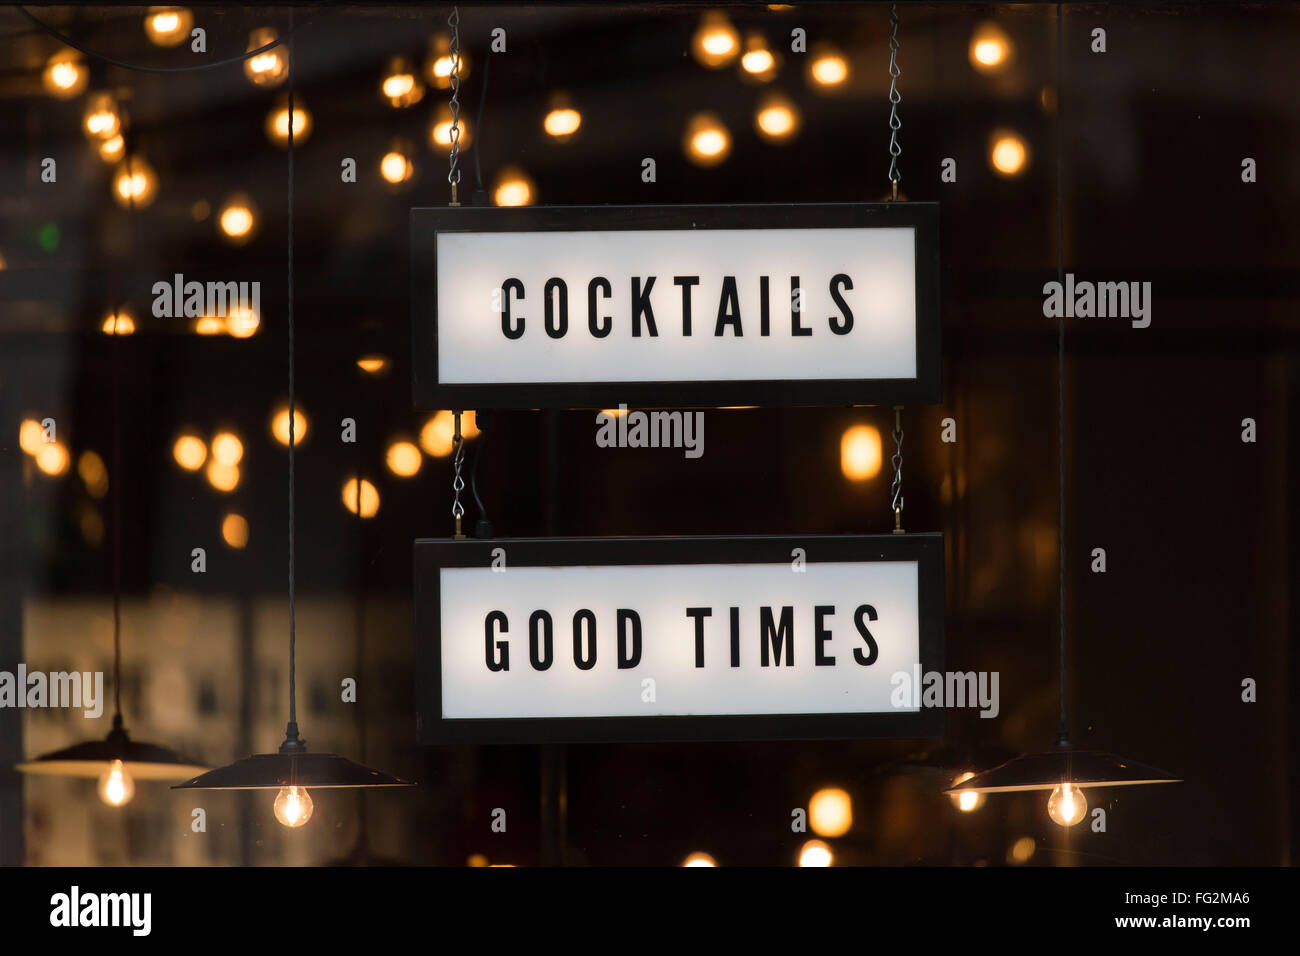 Cocktails good times sign. - Stock Image